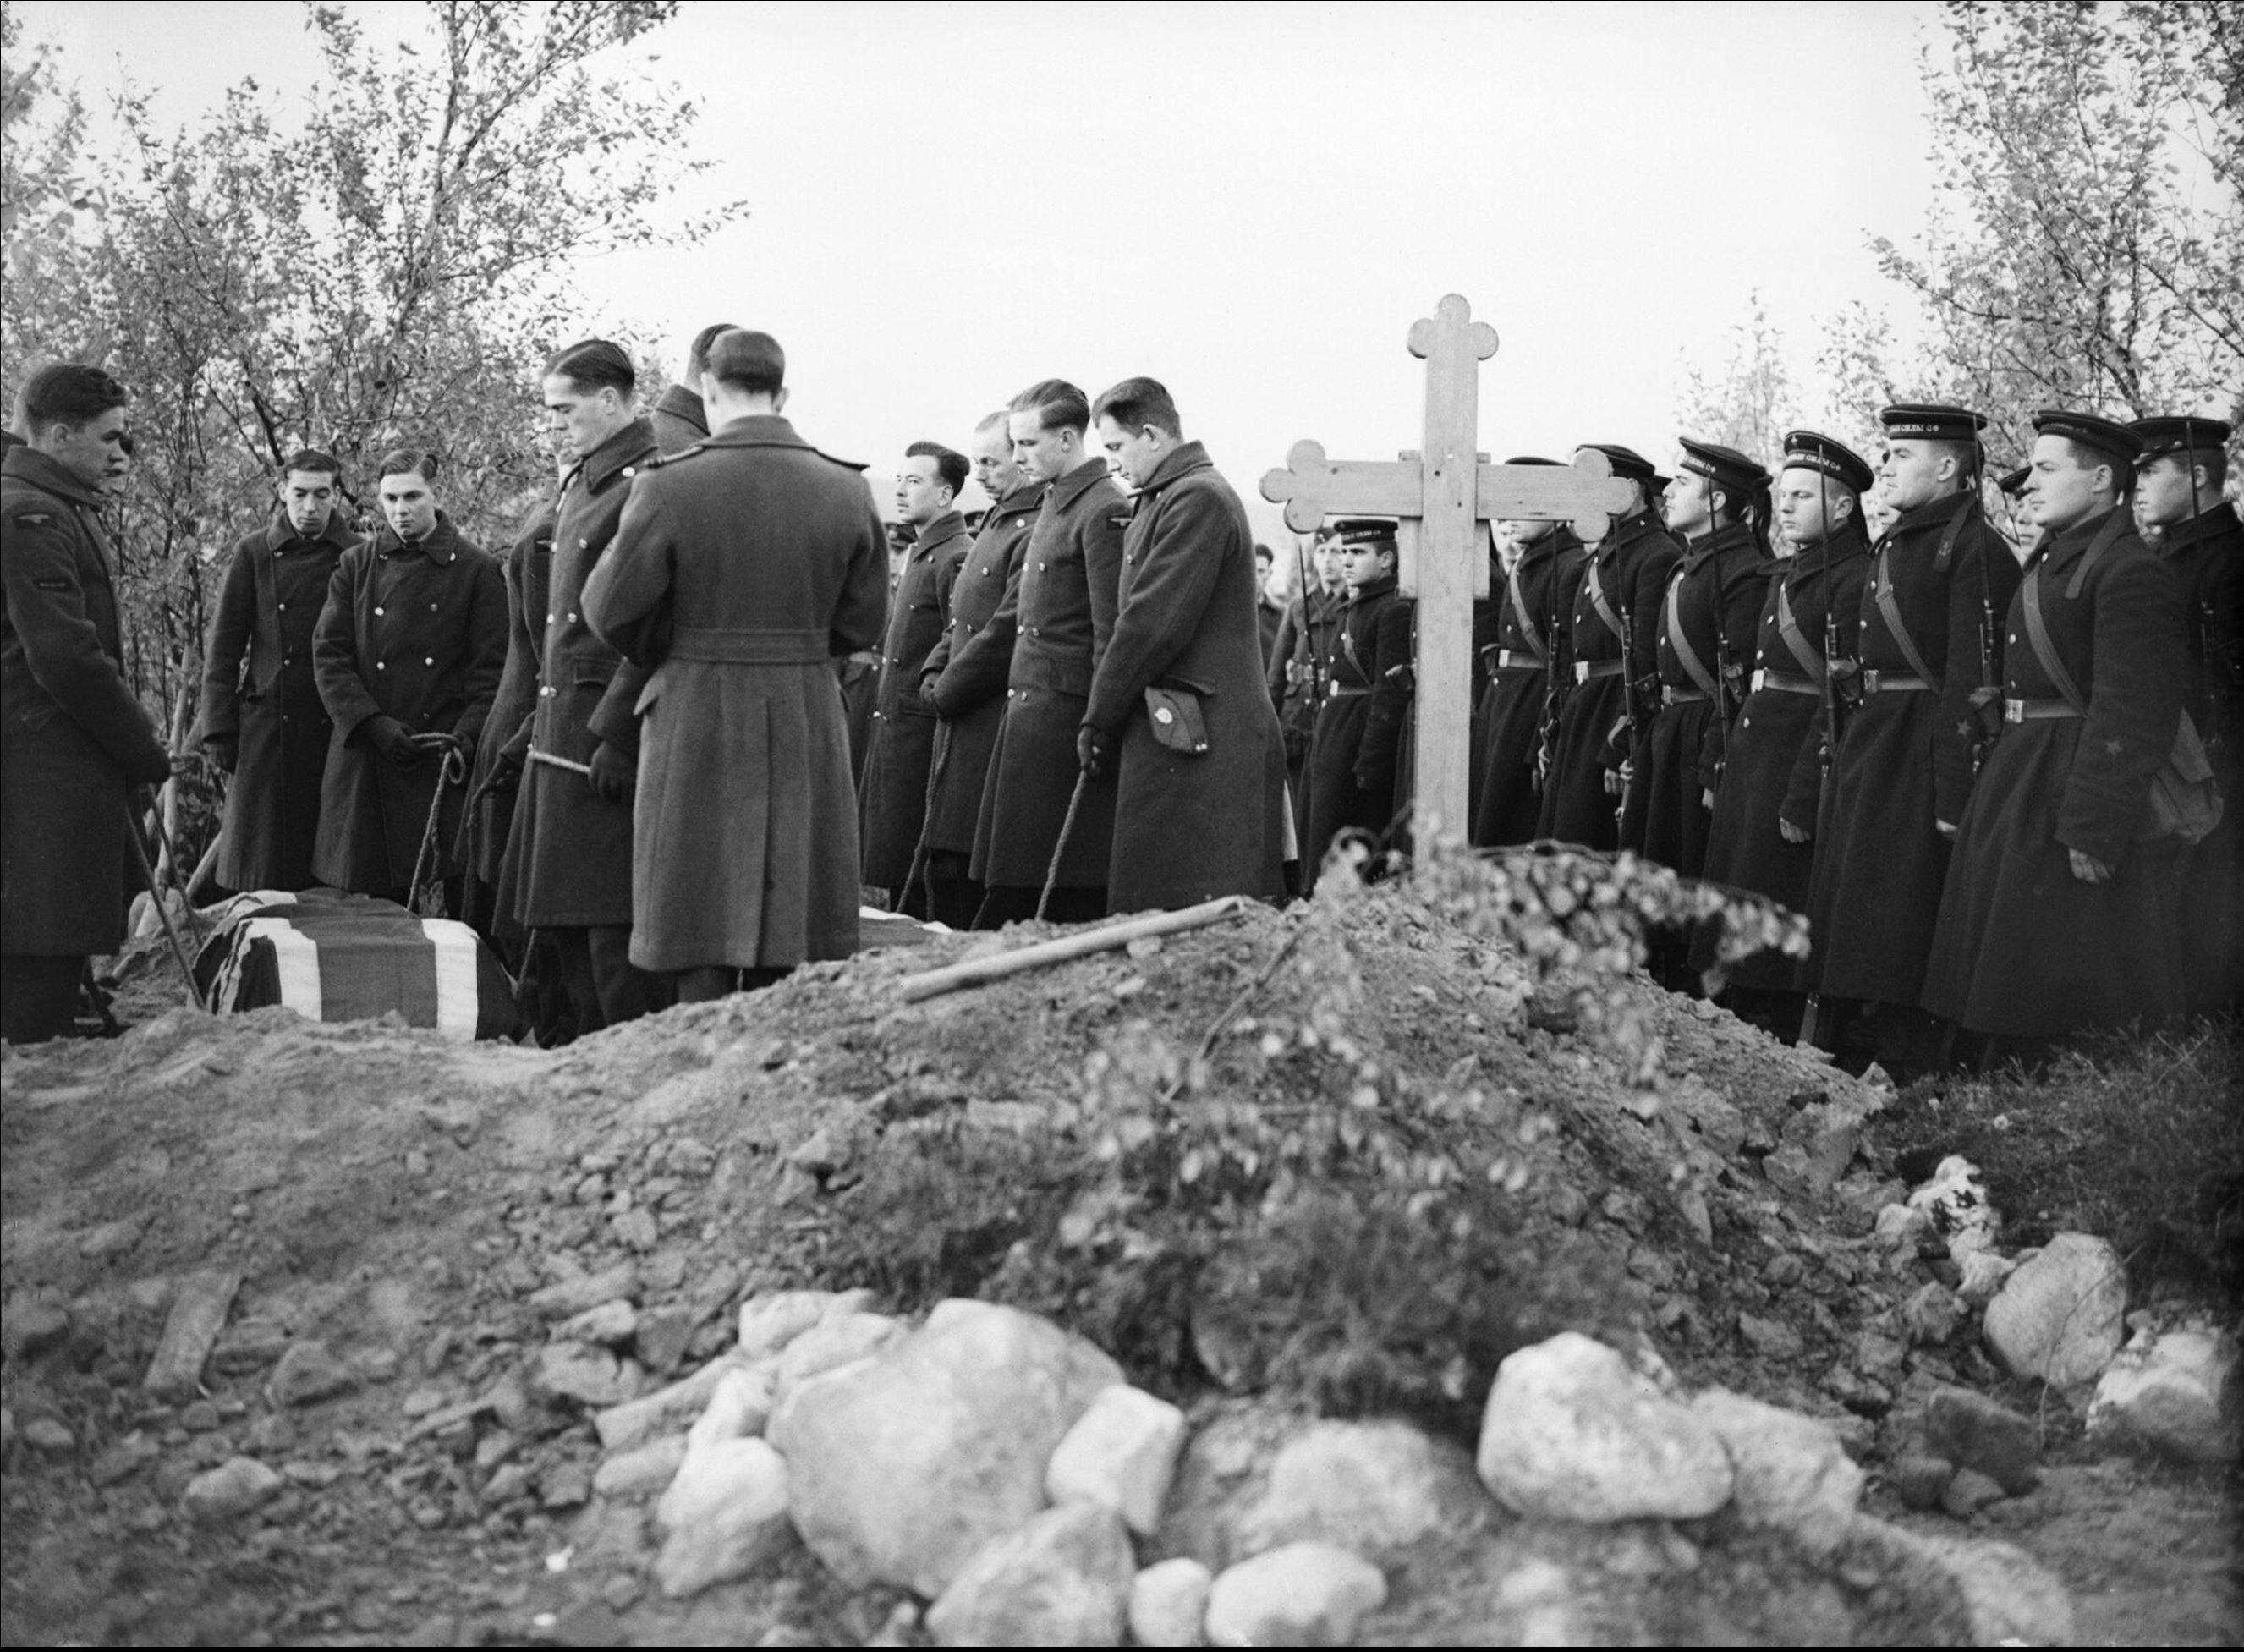 Aircrew from RAF 151 Wing conduct a funeral service Vaenga USSR 1941 IWM CR63